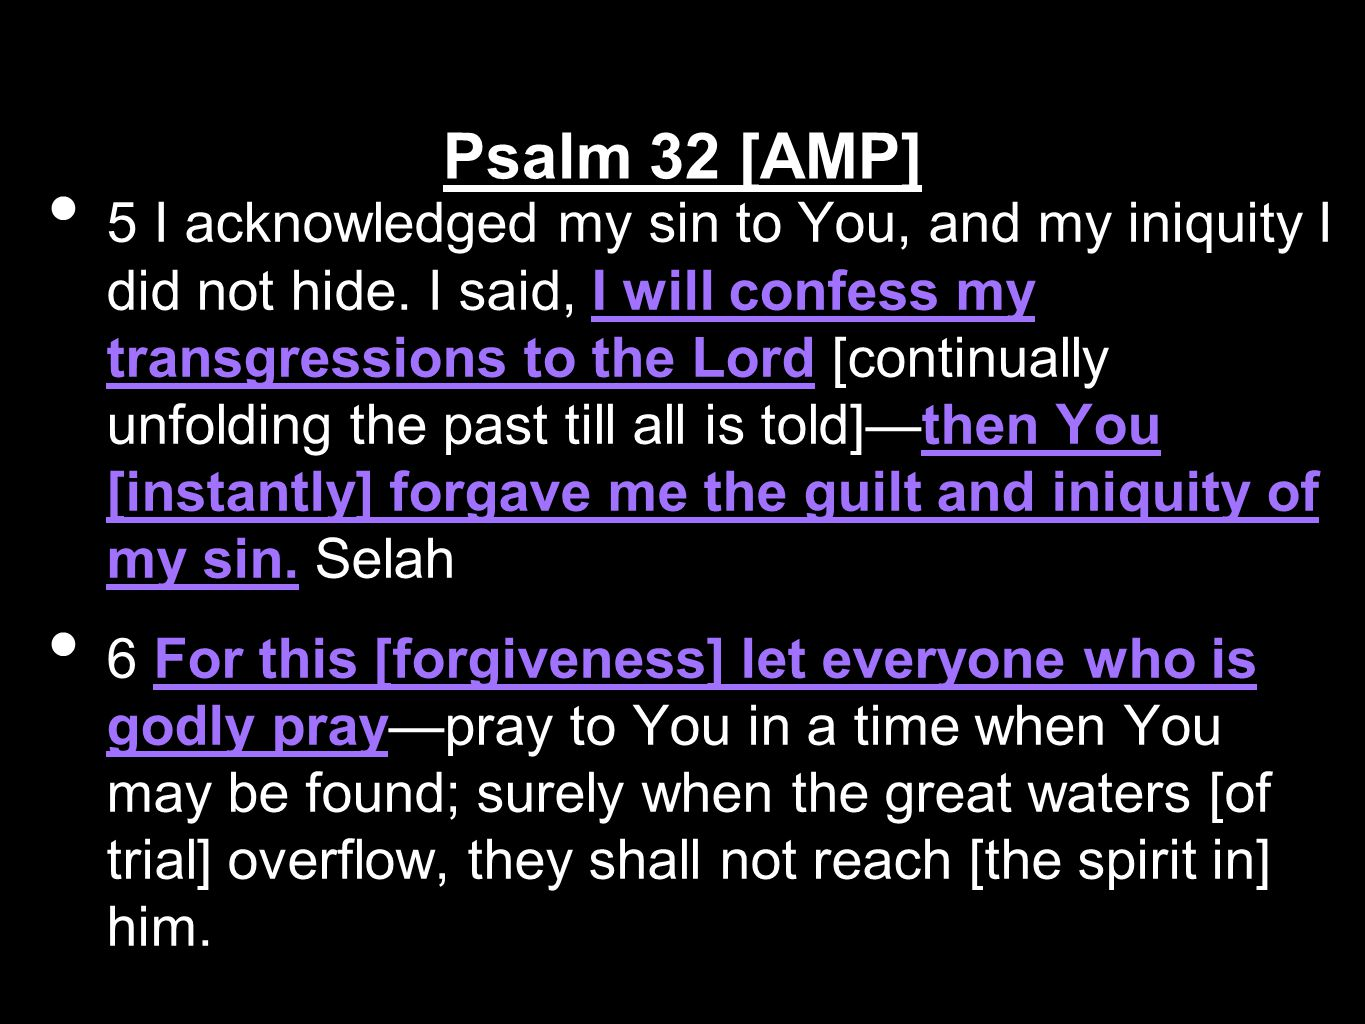 5 I acknowledged my sin to You, and my iniquity I did not hide. I said, I will confess my transgressions to the Lord [continually unfolding the past t